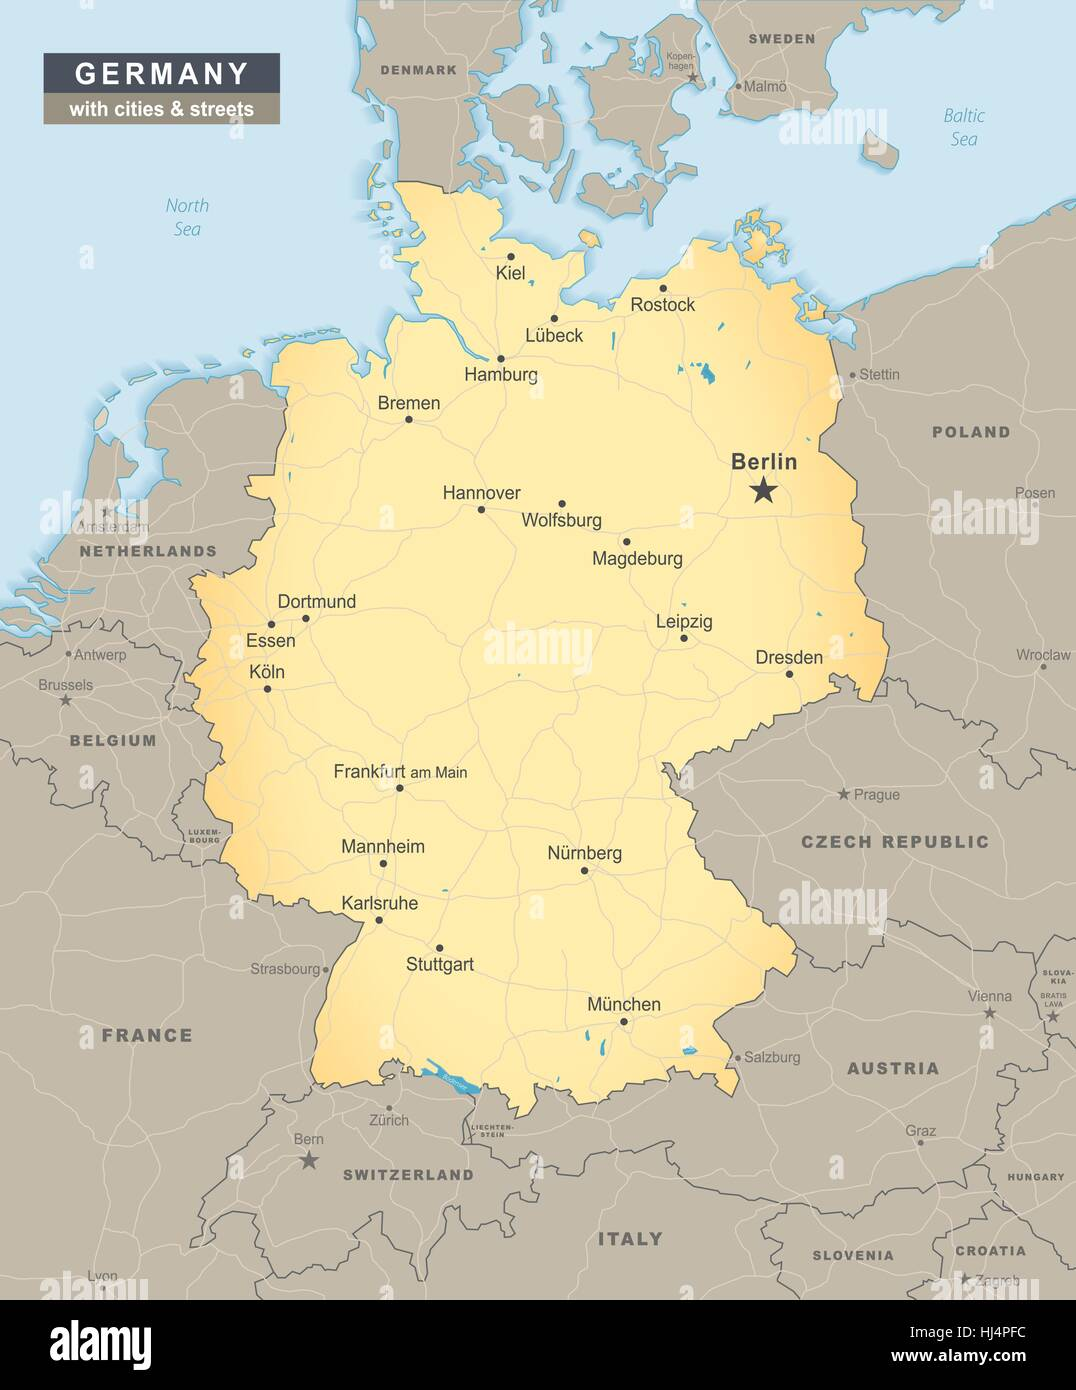 germany map overview with streets and cities including neighbour states illustration stock image